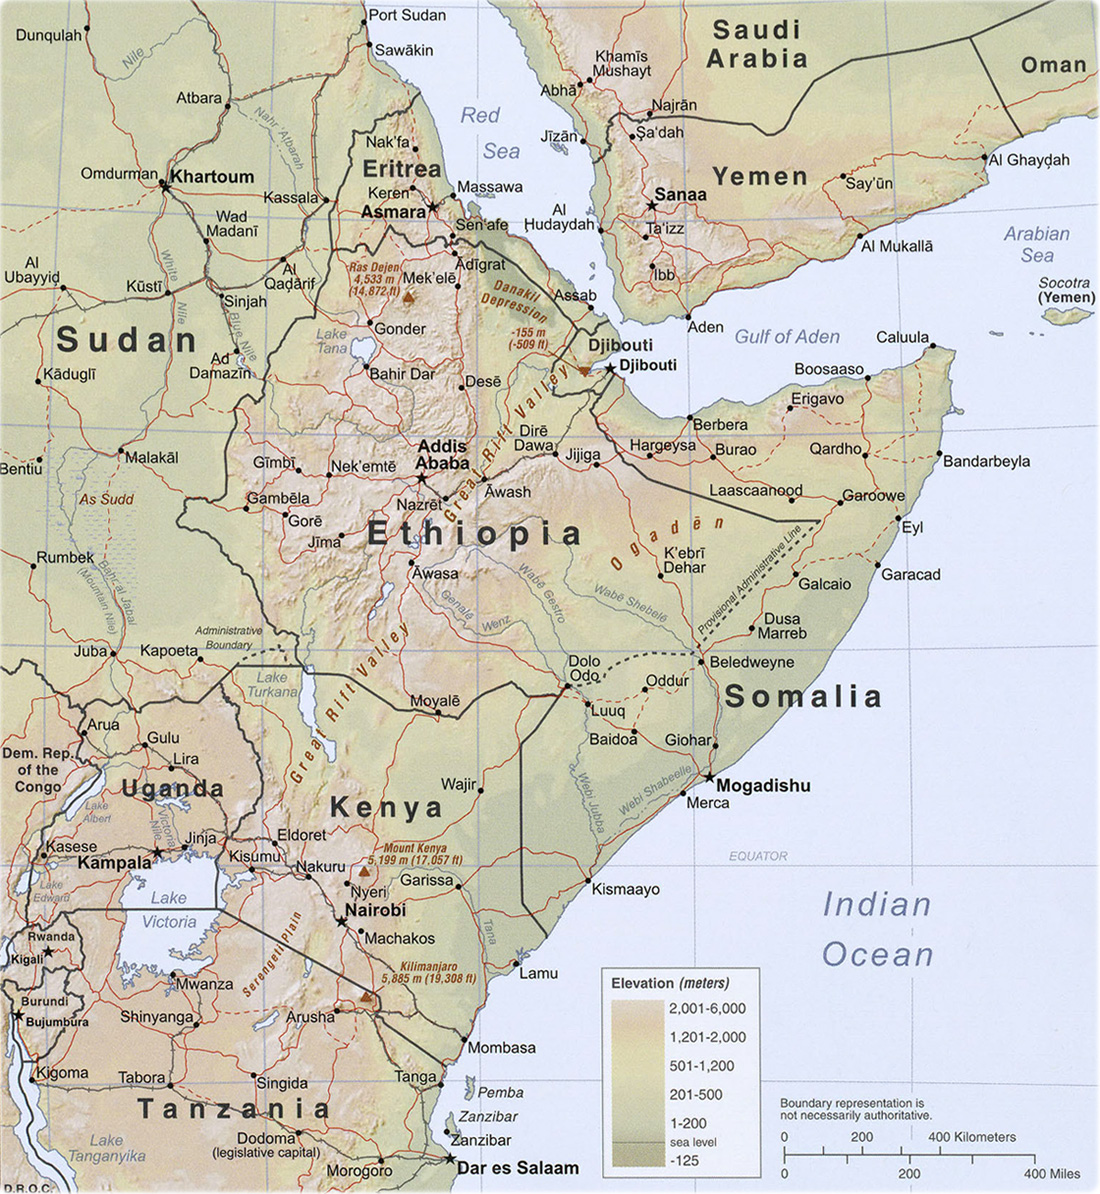 Ethiopia Location On Africa Map.Map Of The Horn Of Africa Somalia Ethiopia